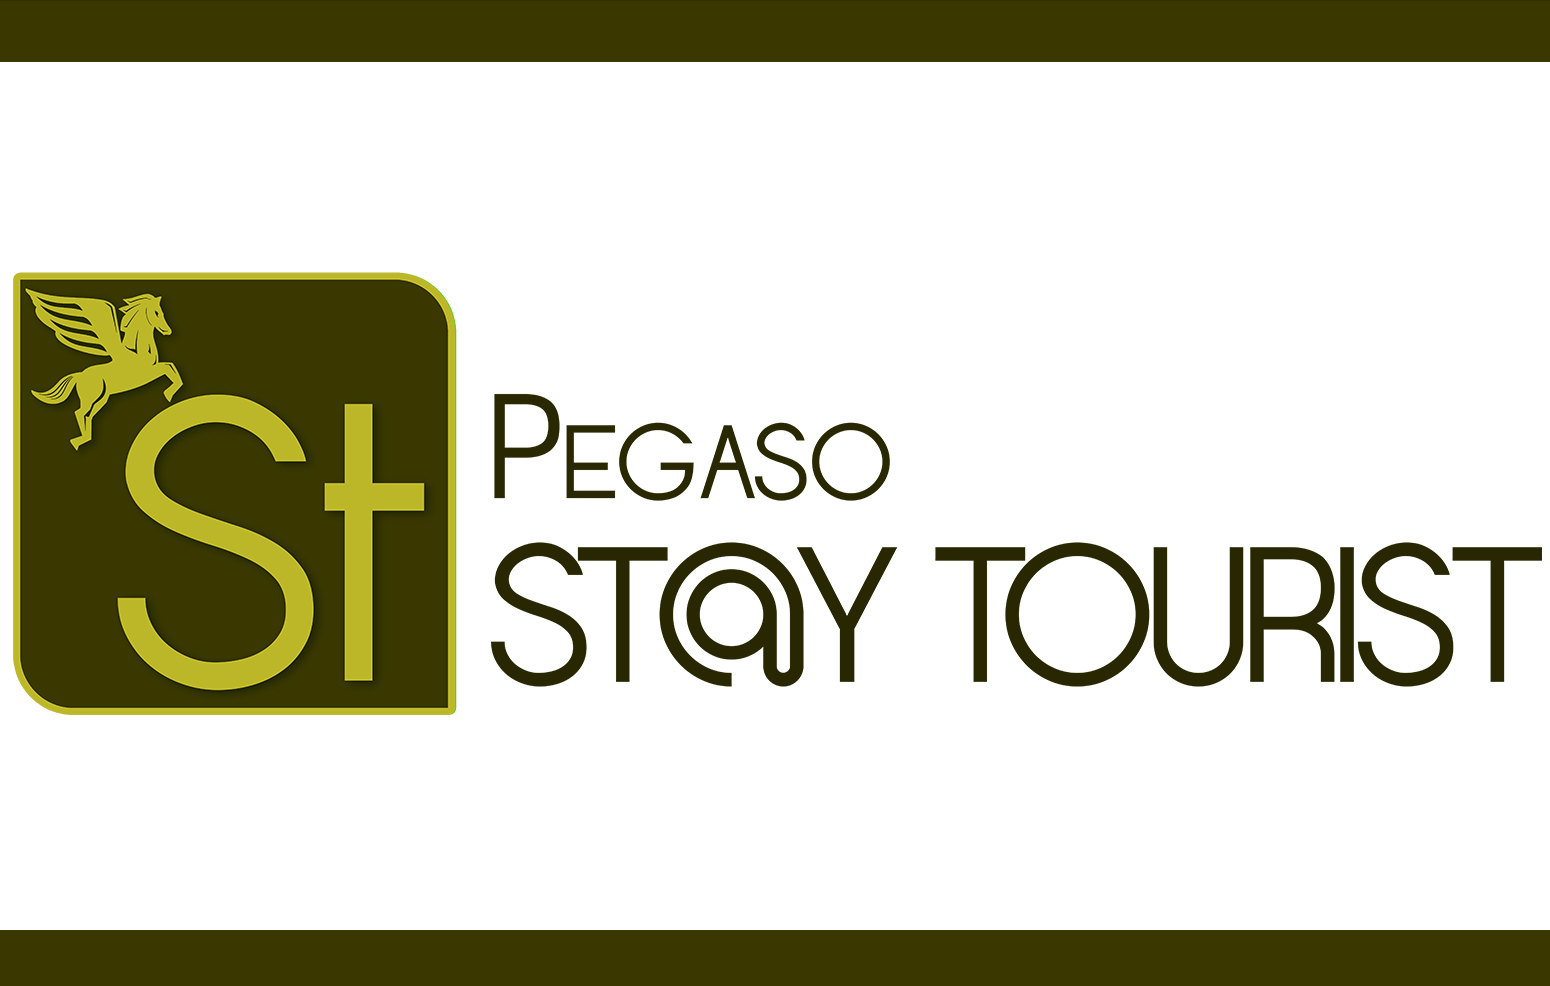 Pegaso Stay Tourist